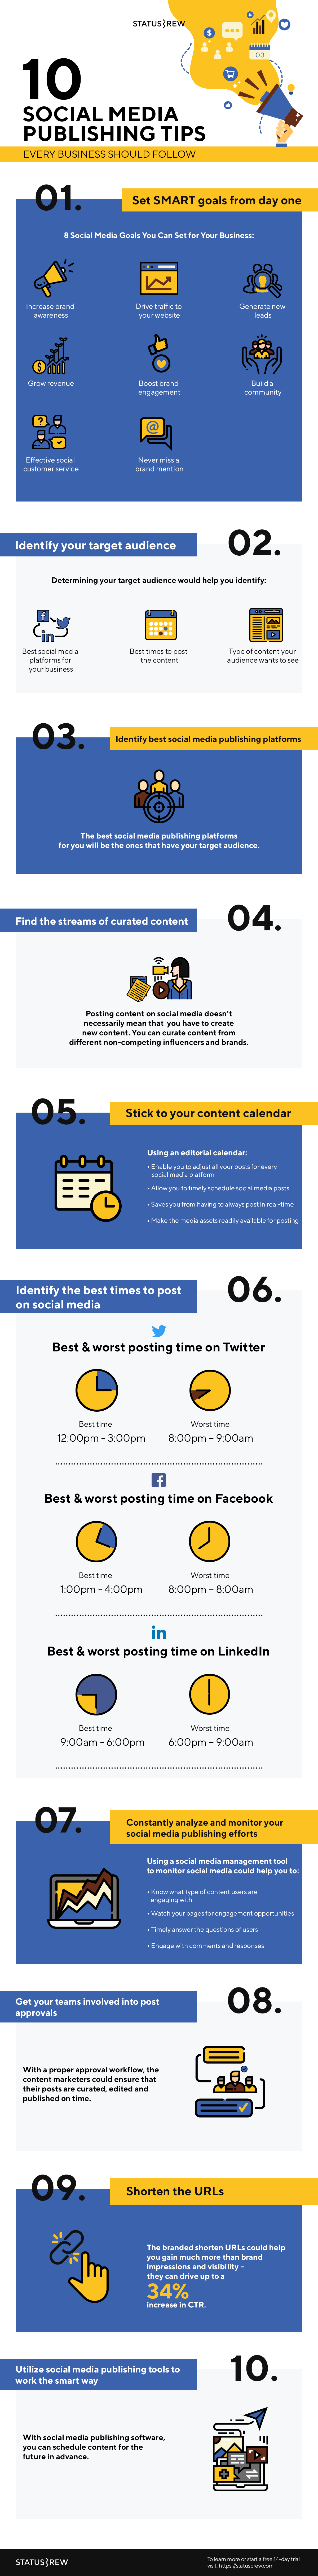 Social Media Publishing Tips Infographic